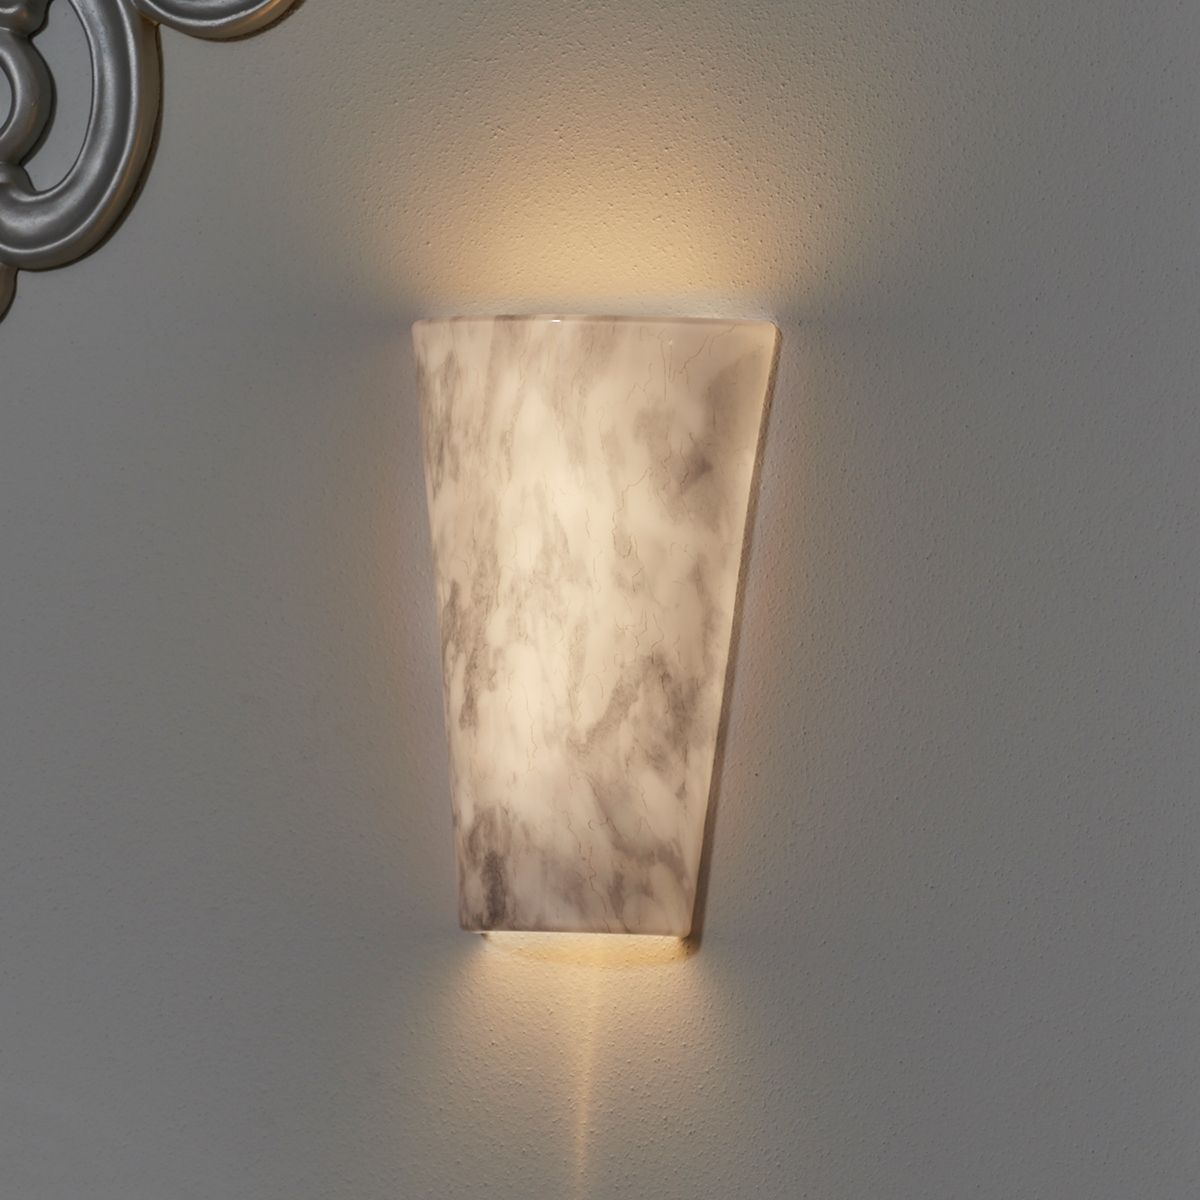 Vivid Stone High Gloss Sconce Battery Operated Wall Sconce Sconces Wall Sconces